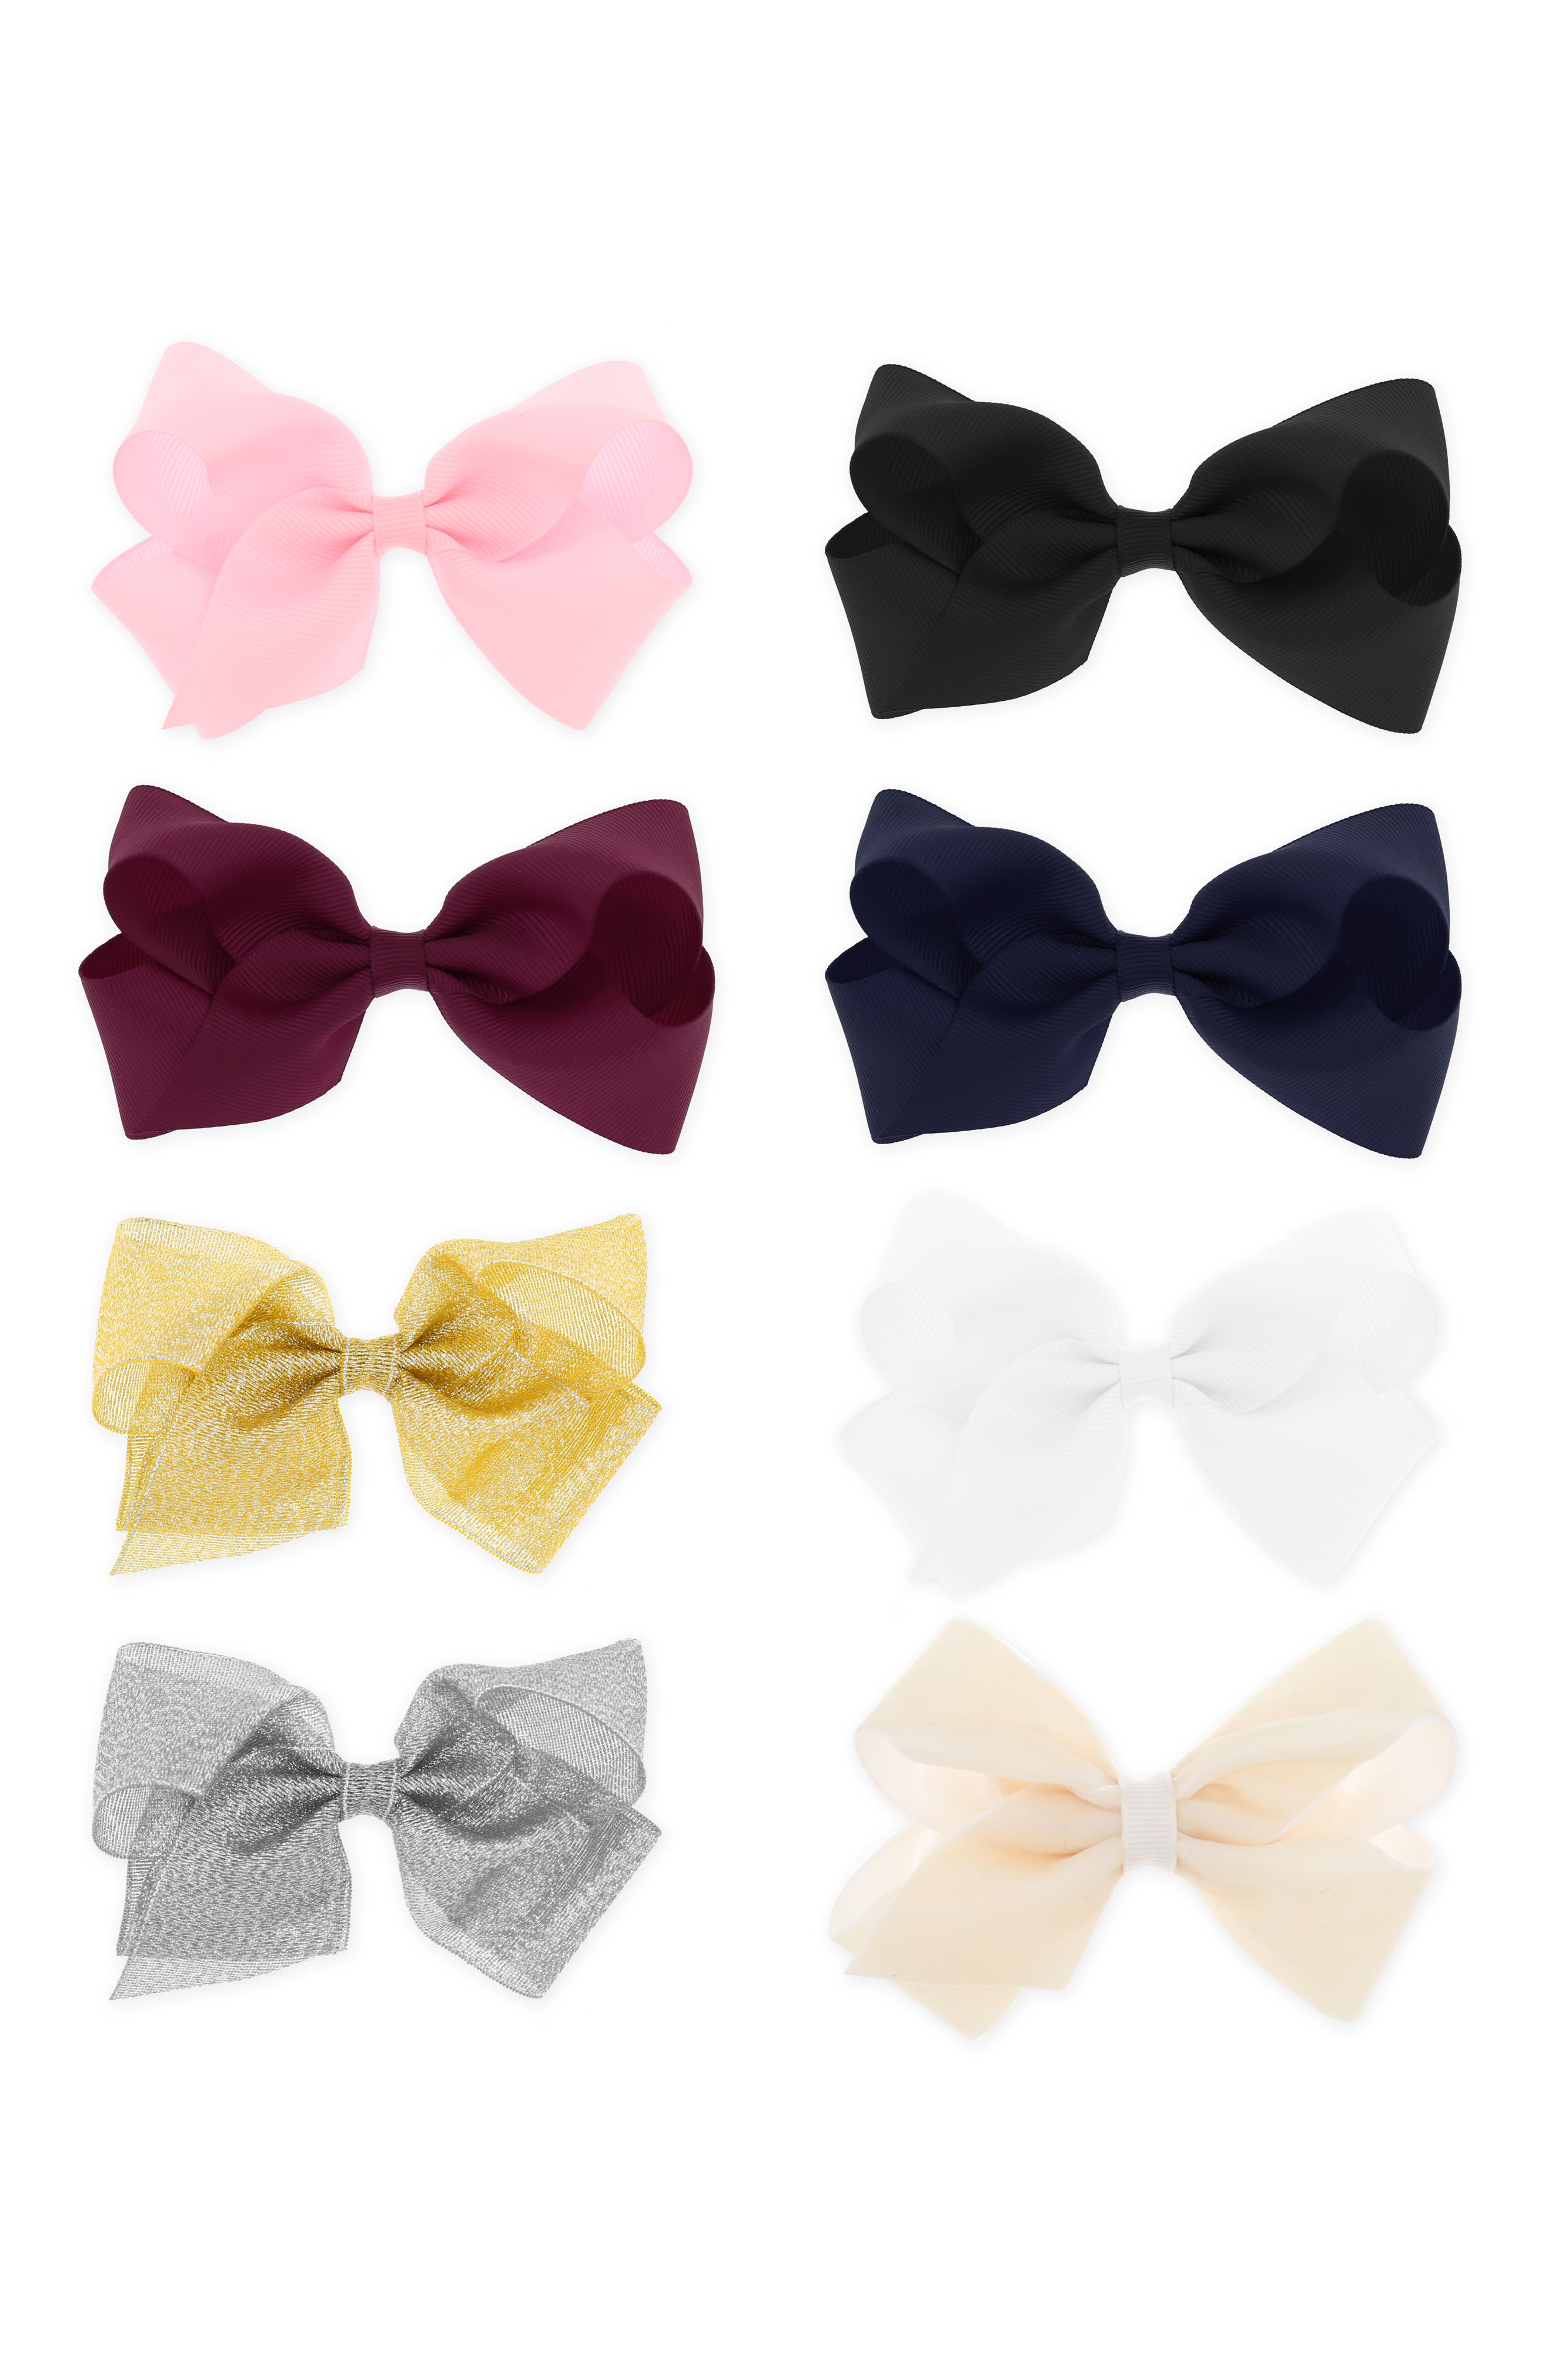 8-Pack Bow Hair Clip Set,                         Main,                         color, 650